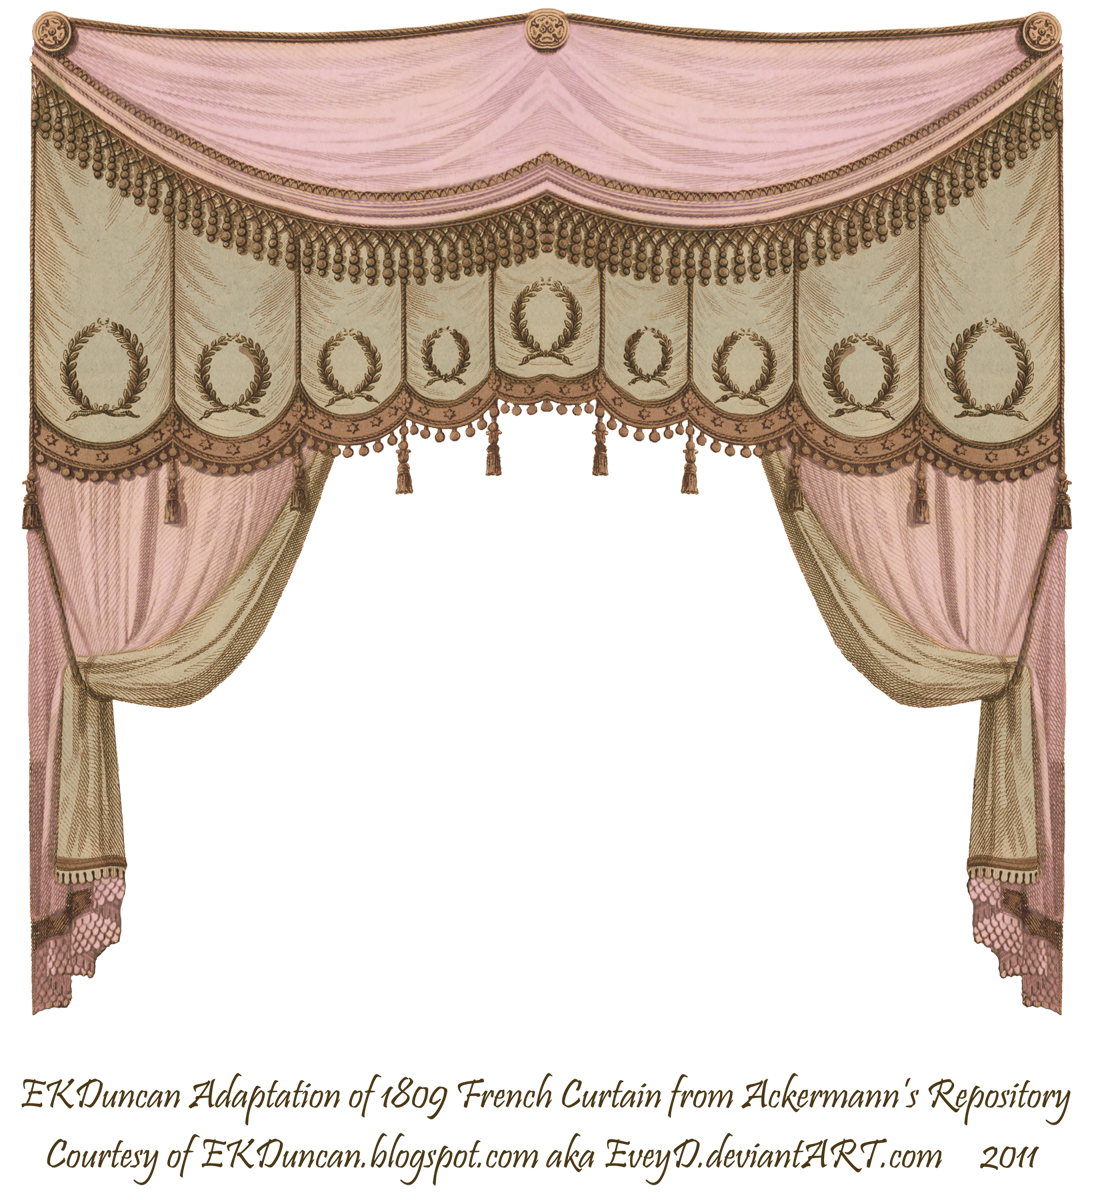 Curtains clipart puppet stage. Ekduncan my fanciful muse